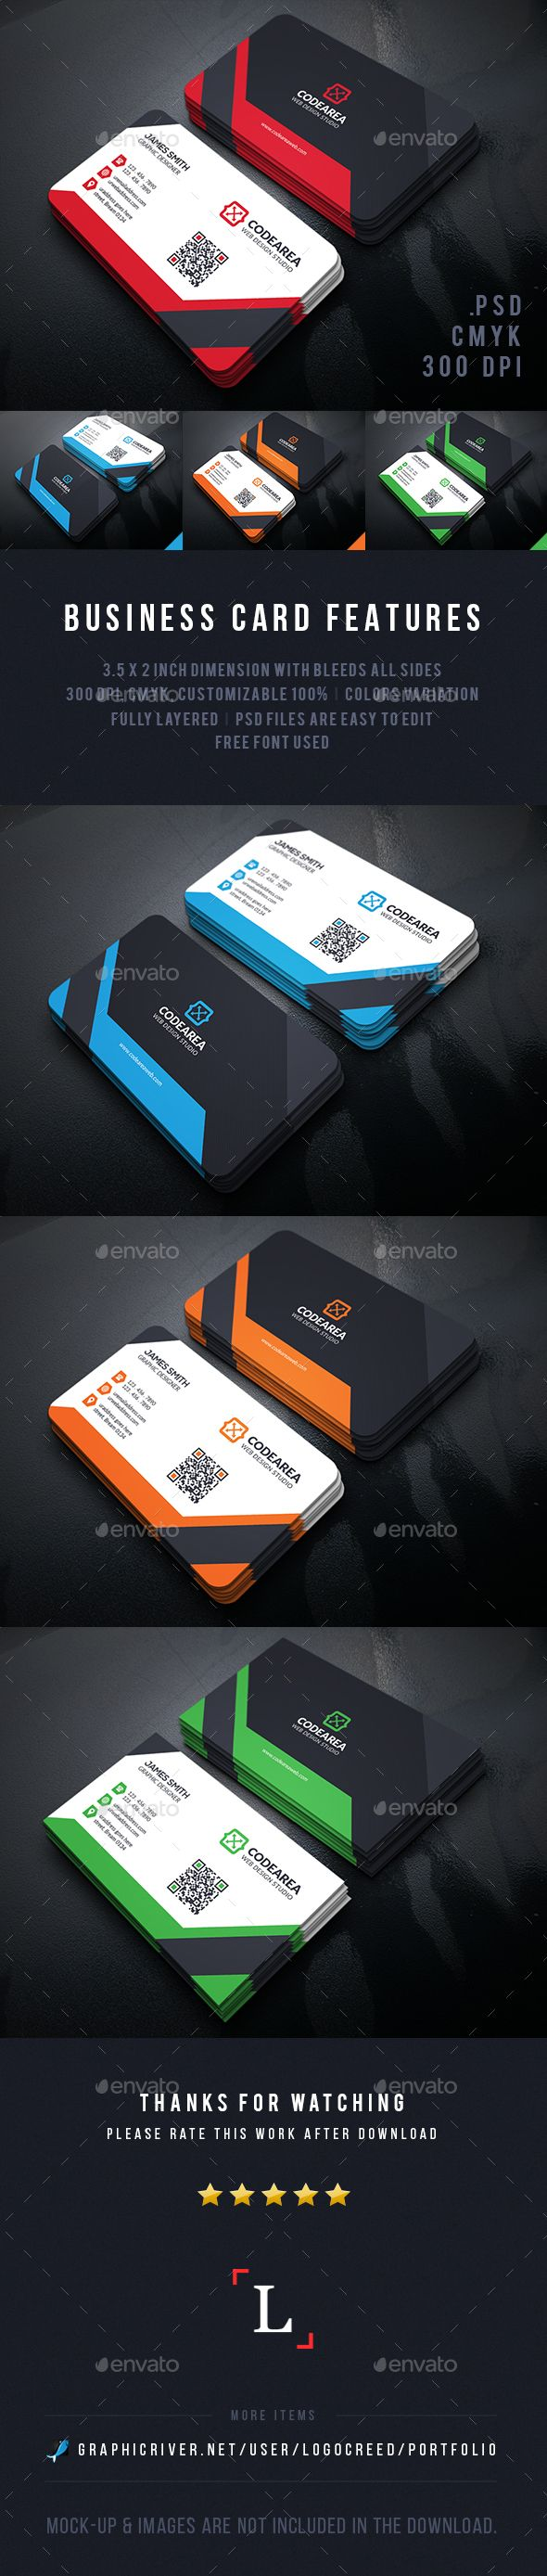 The 25+ best Professional business cards ideas on Pinterest ...